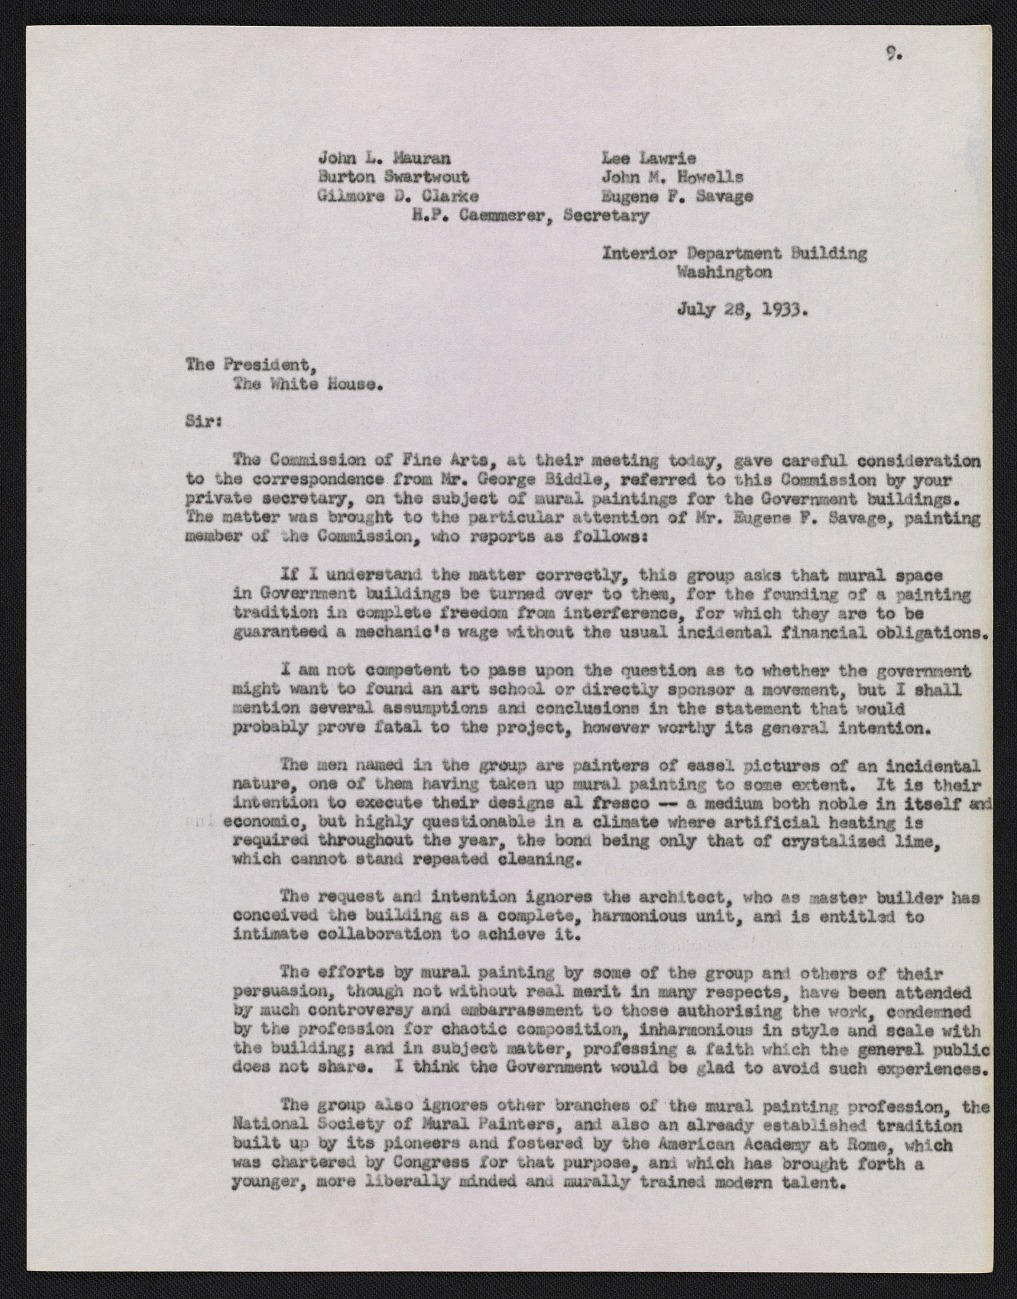 A Finding Aid to the George Biddle papers, circa 1910-1970